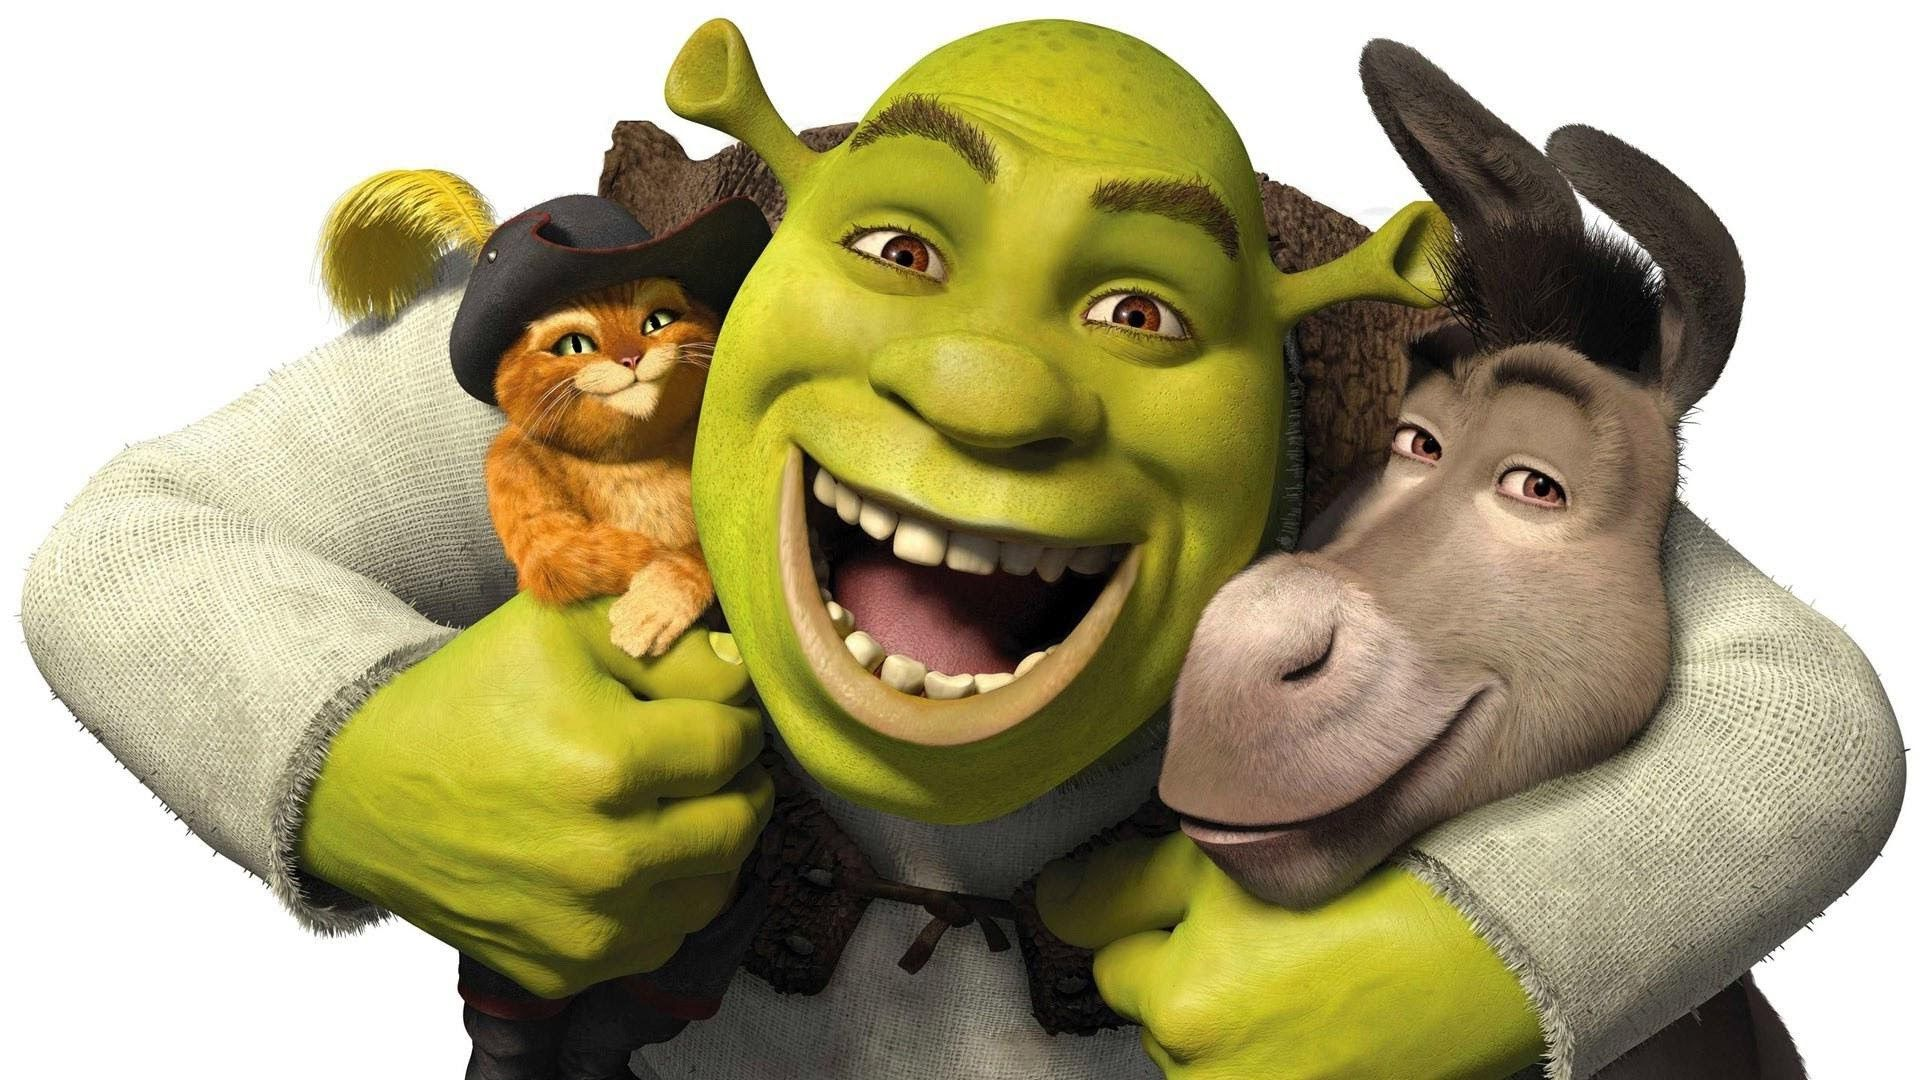 1920x1080 Px Cool Shrek Superslam Wallpaper By Huxley London